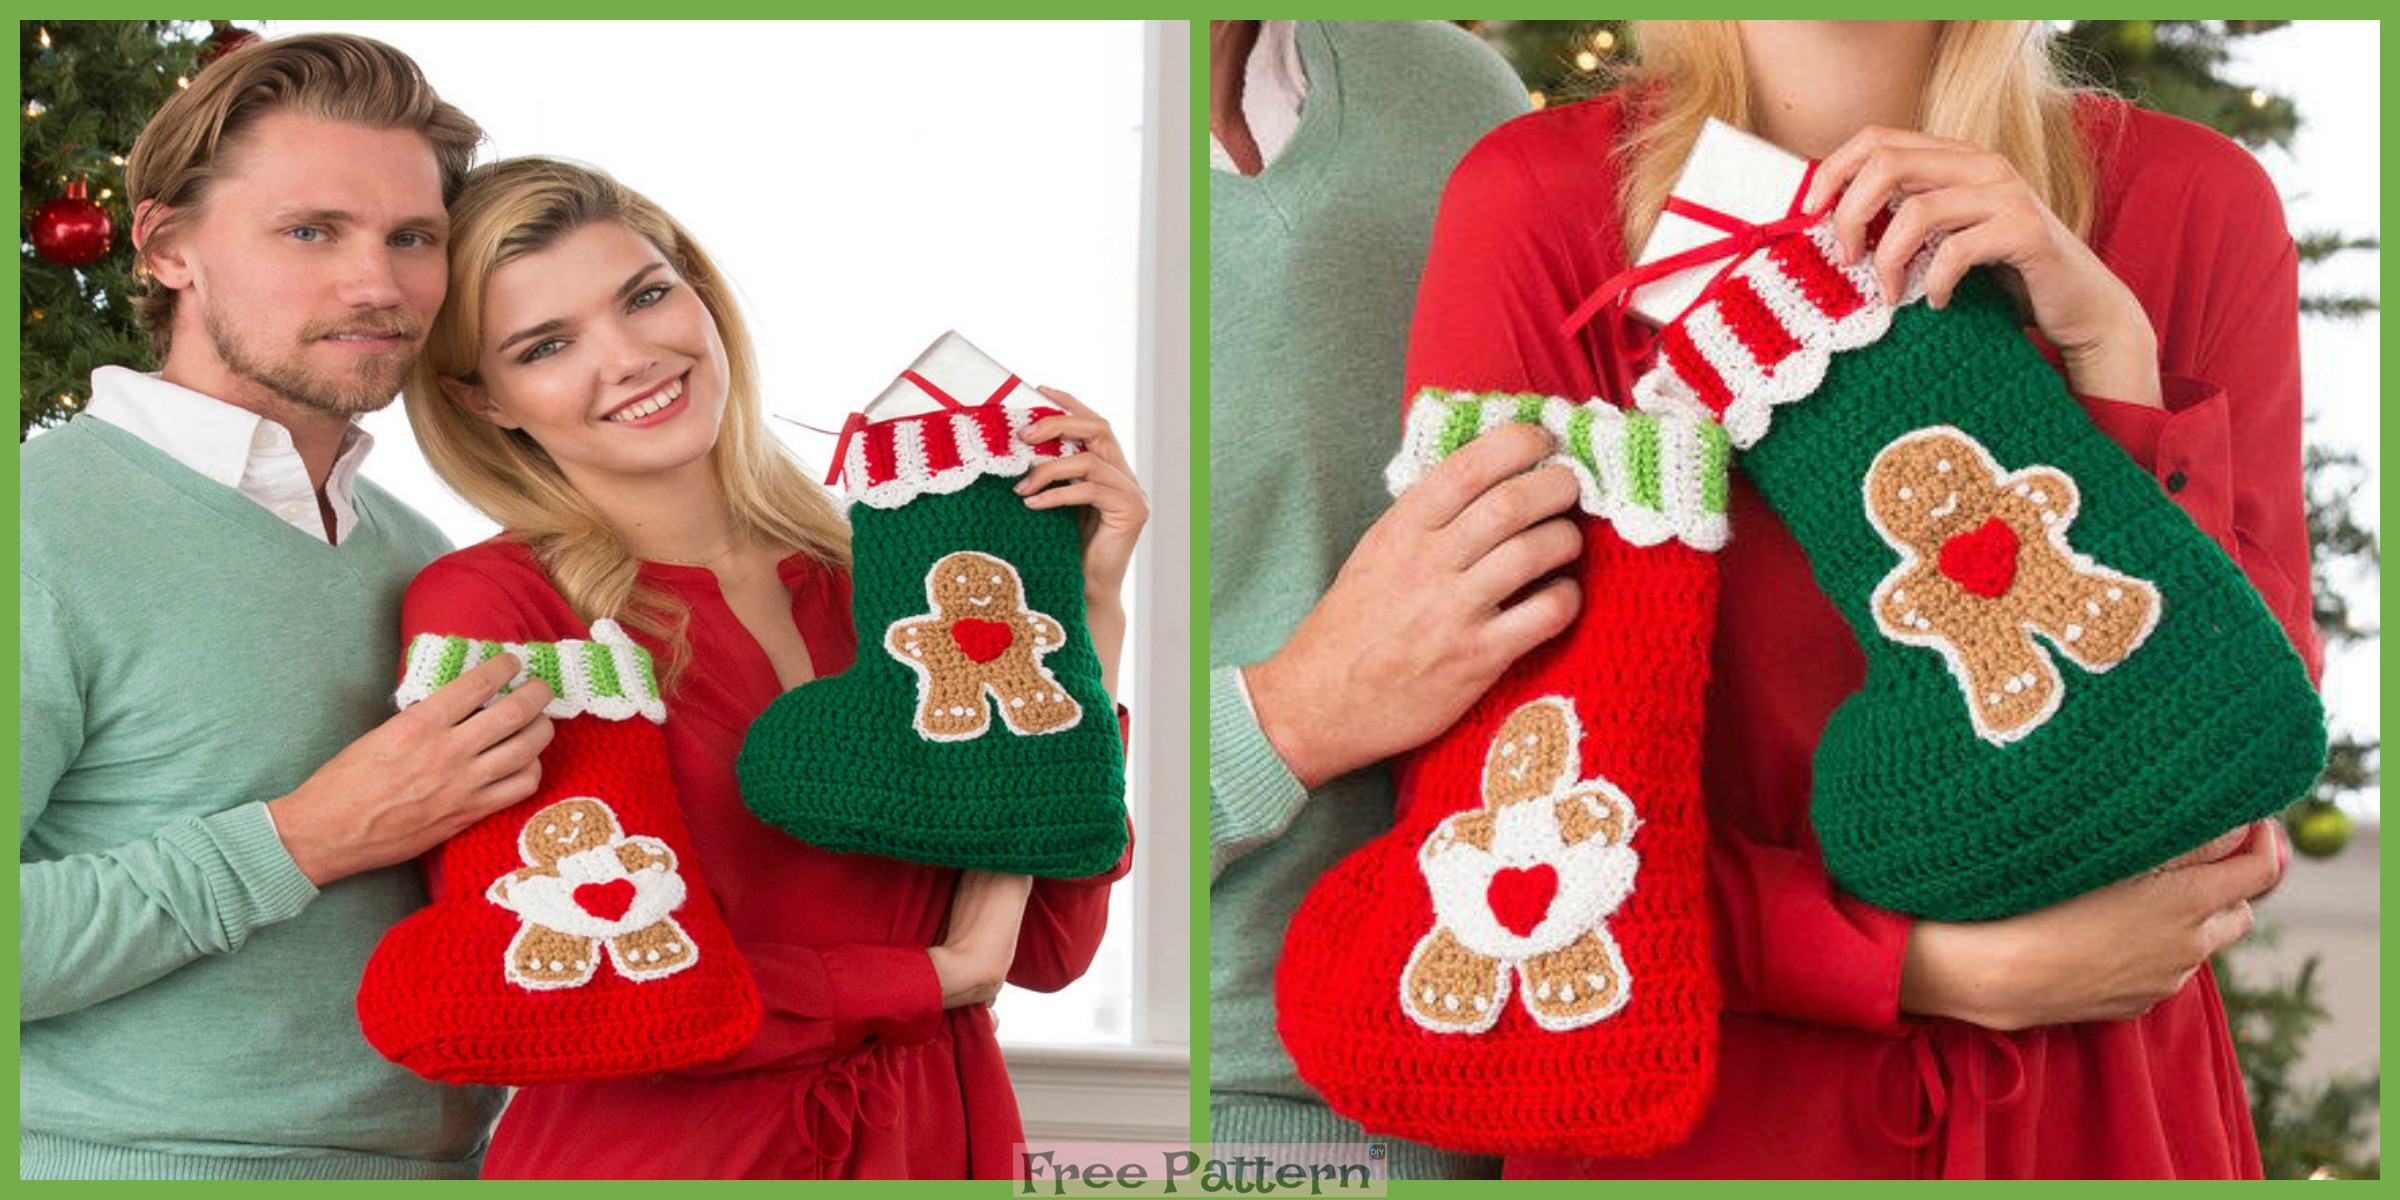 Crochet Sweet Gingerbread Stockings – Free Pattern